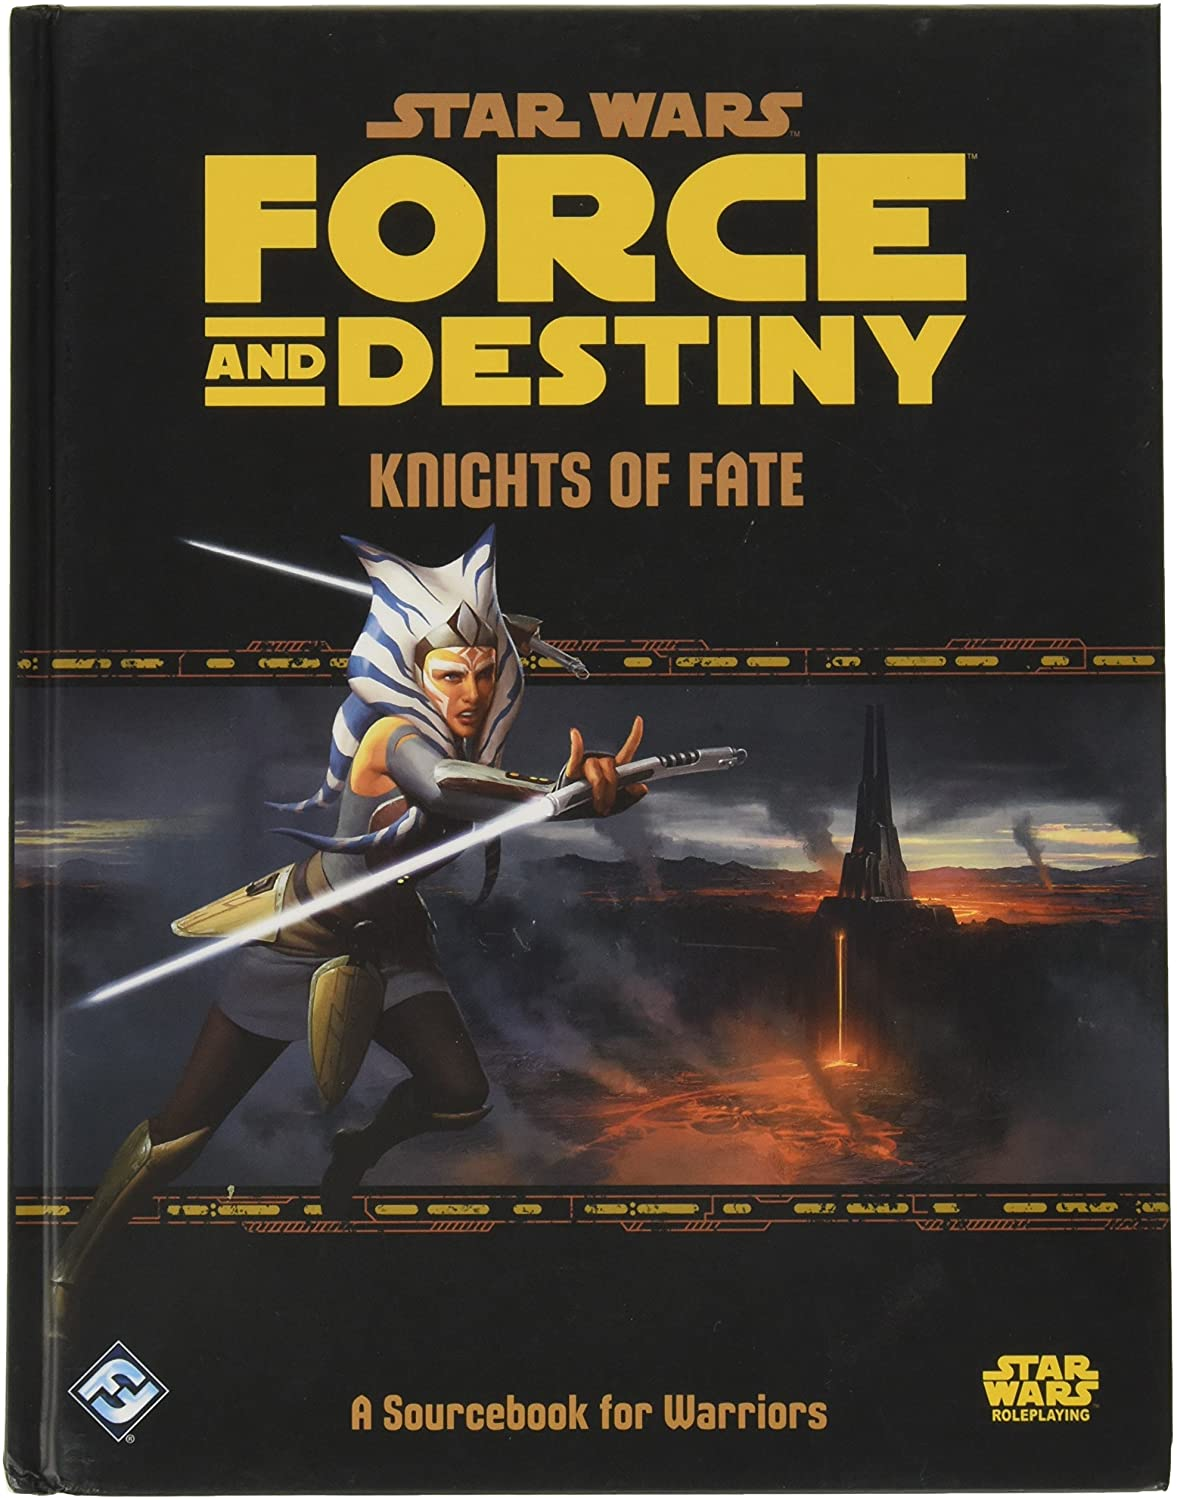 Star Wars Force and Destiny: Knights of Fate